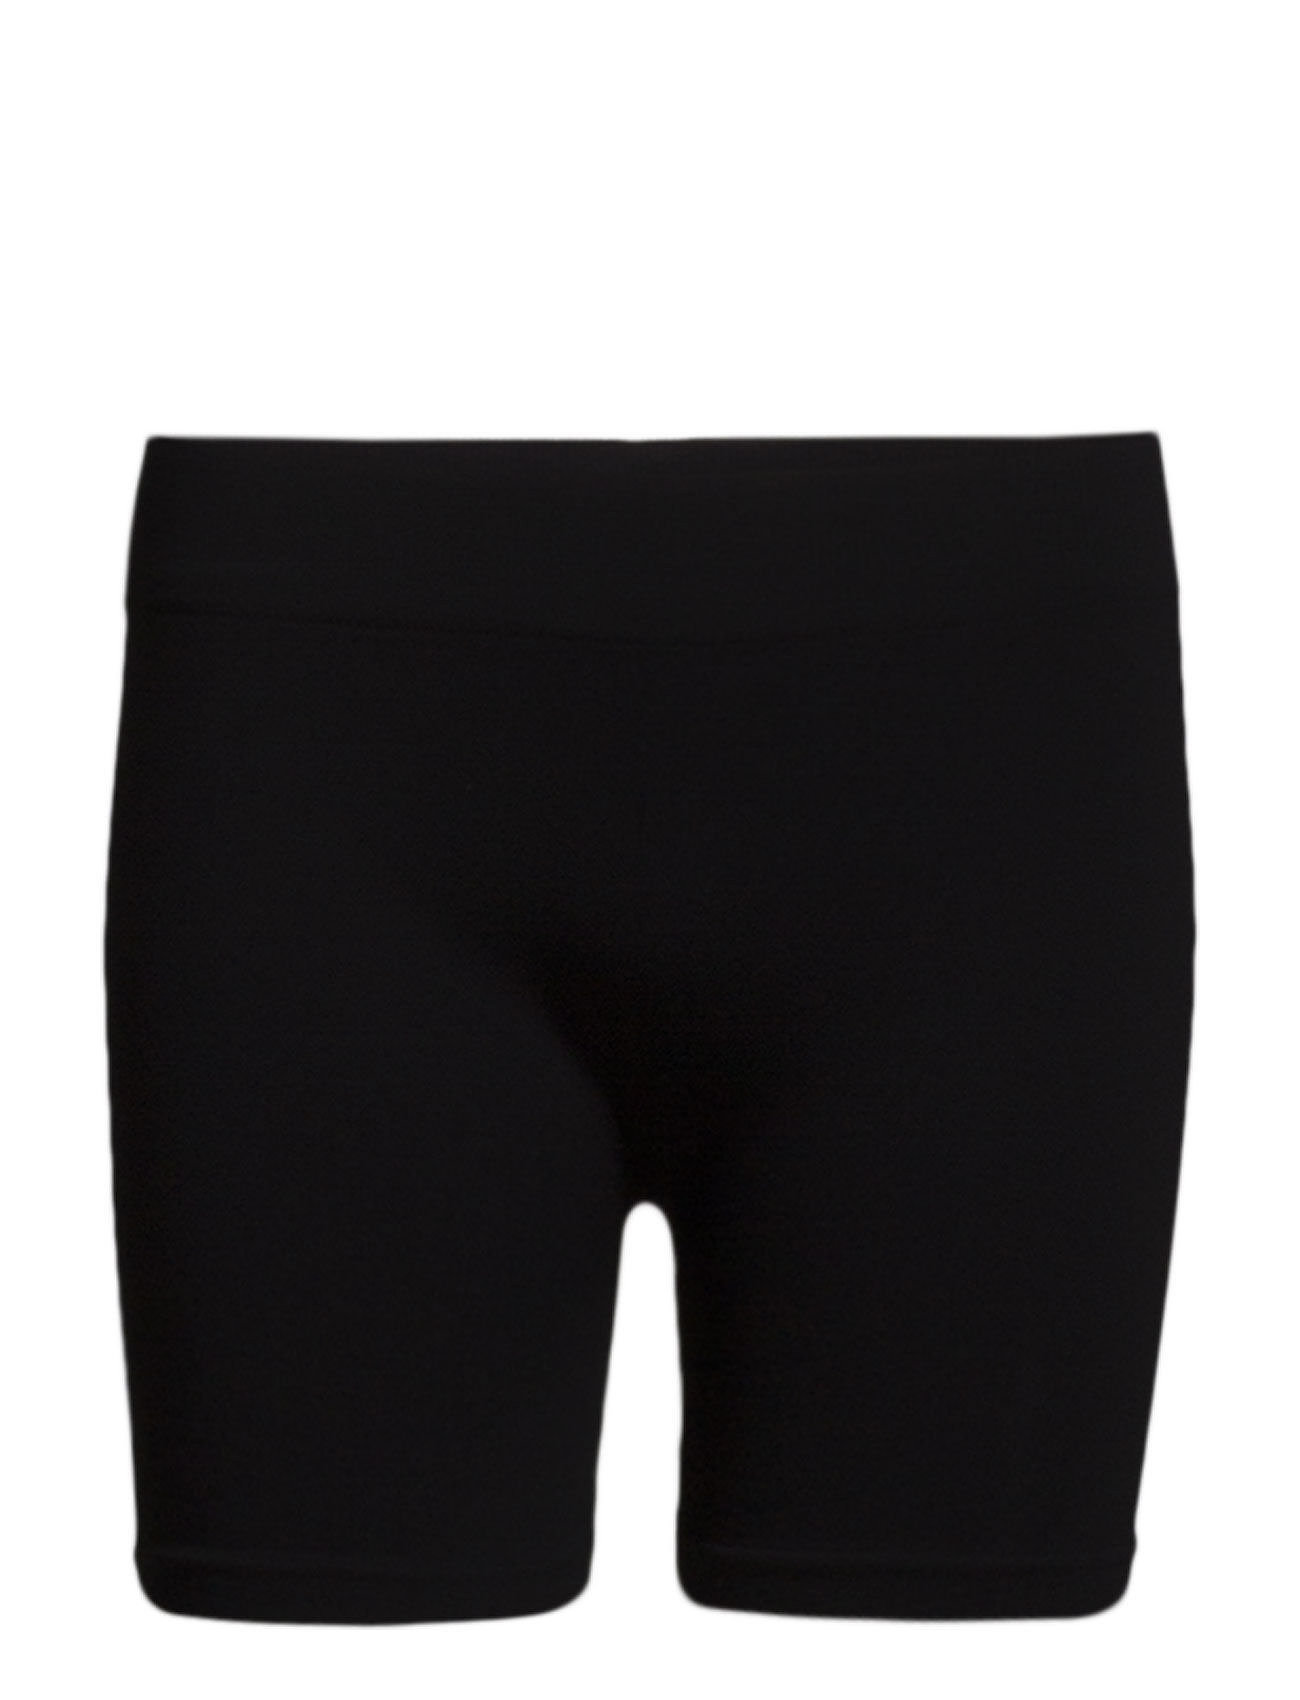 Decoy Seamless hot pants - BLACK